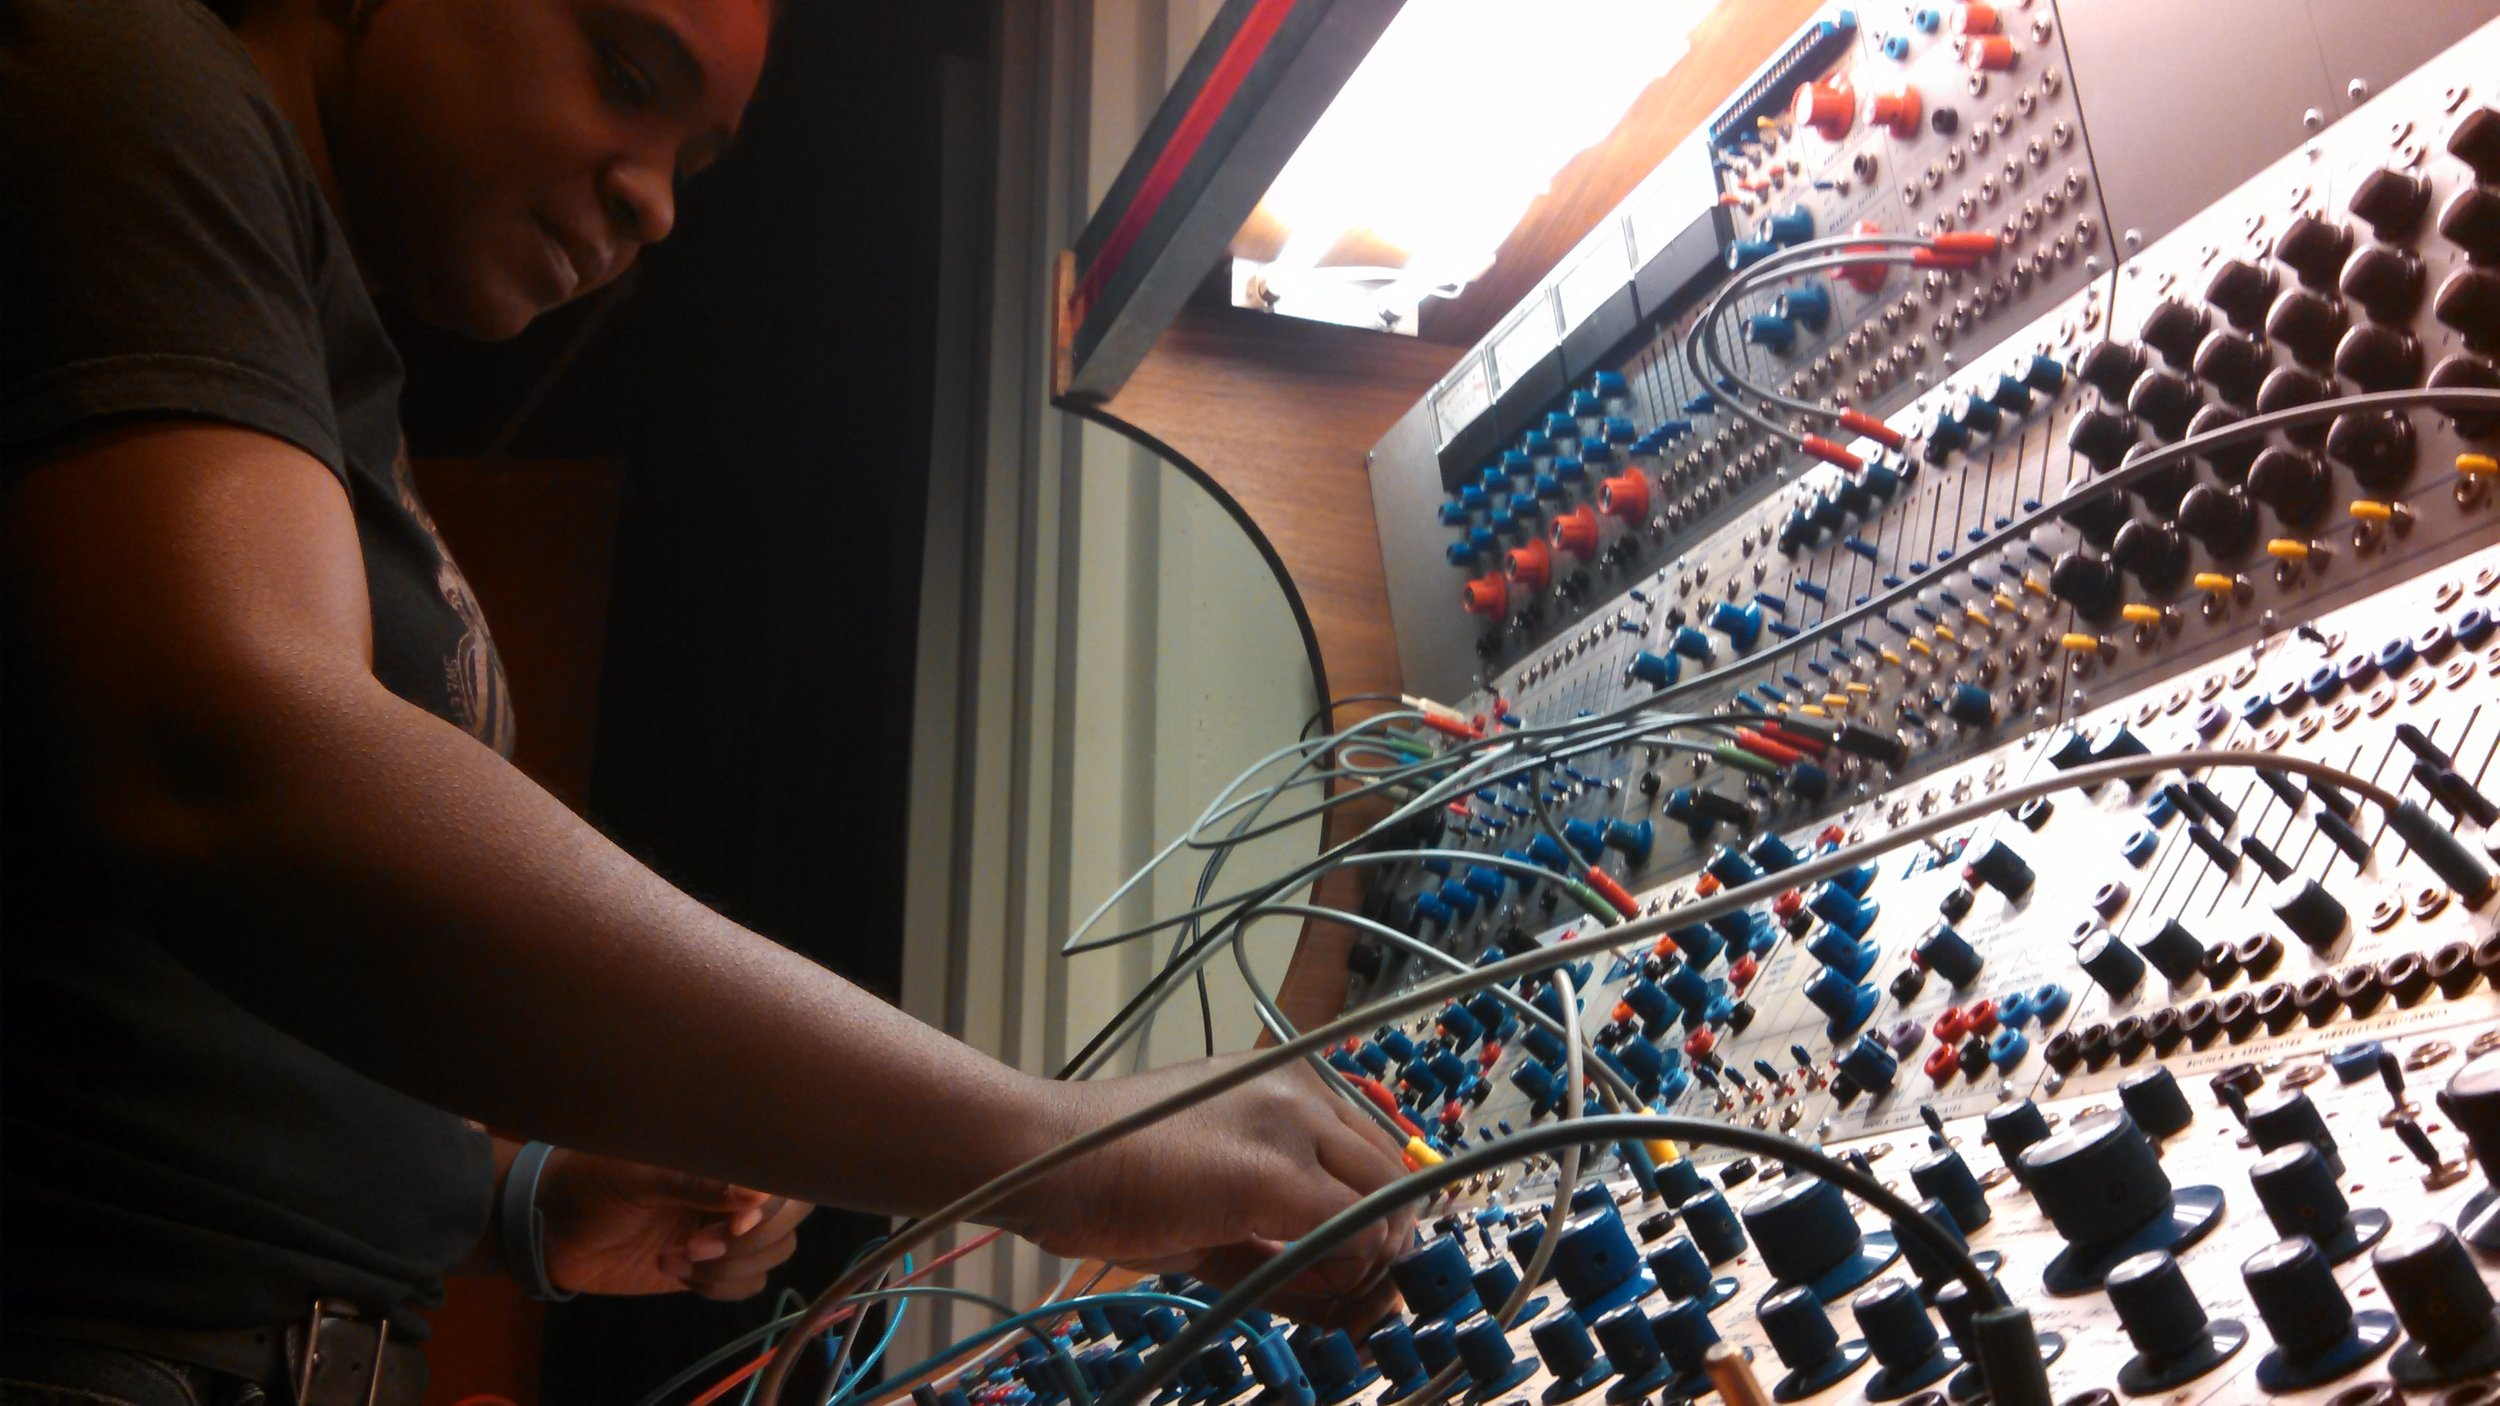 Buchla 200 modular synthesizer at EMS Stockholm